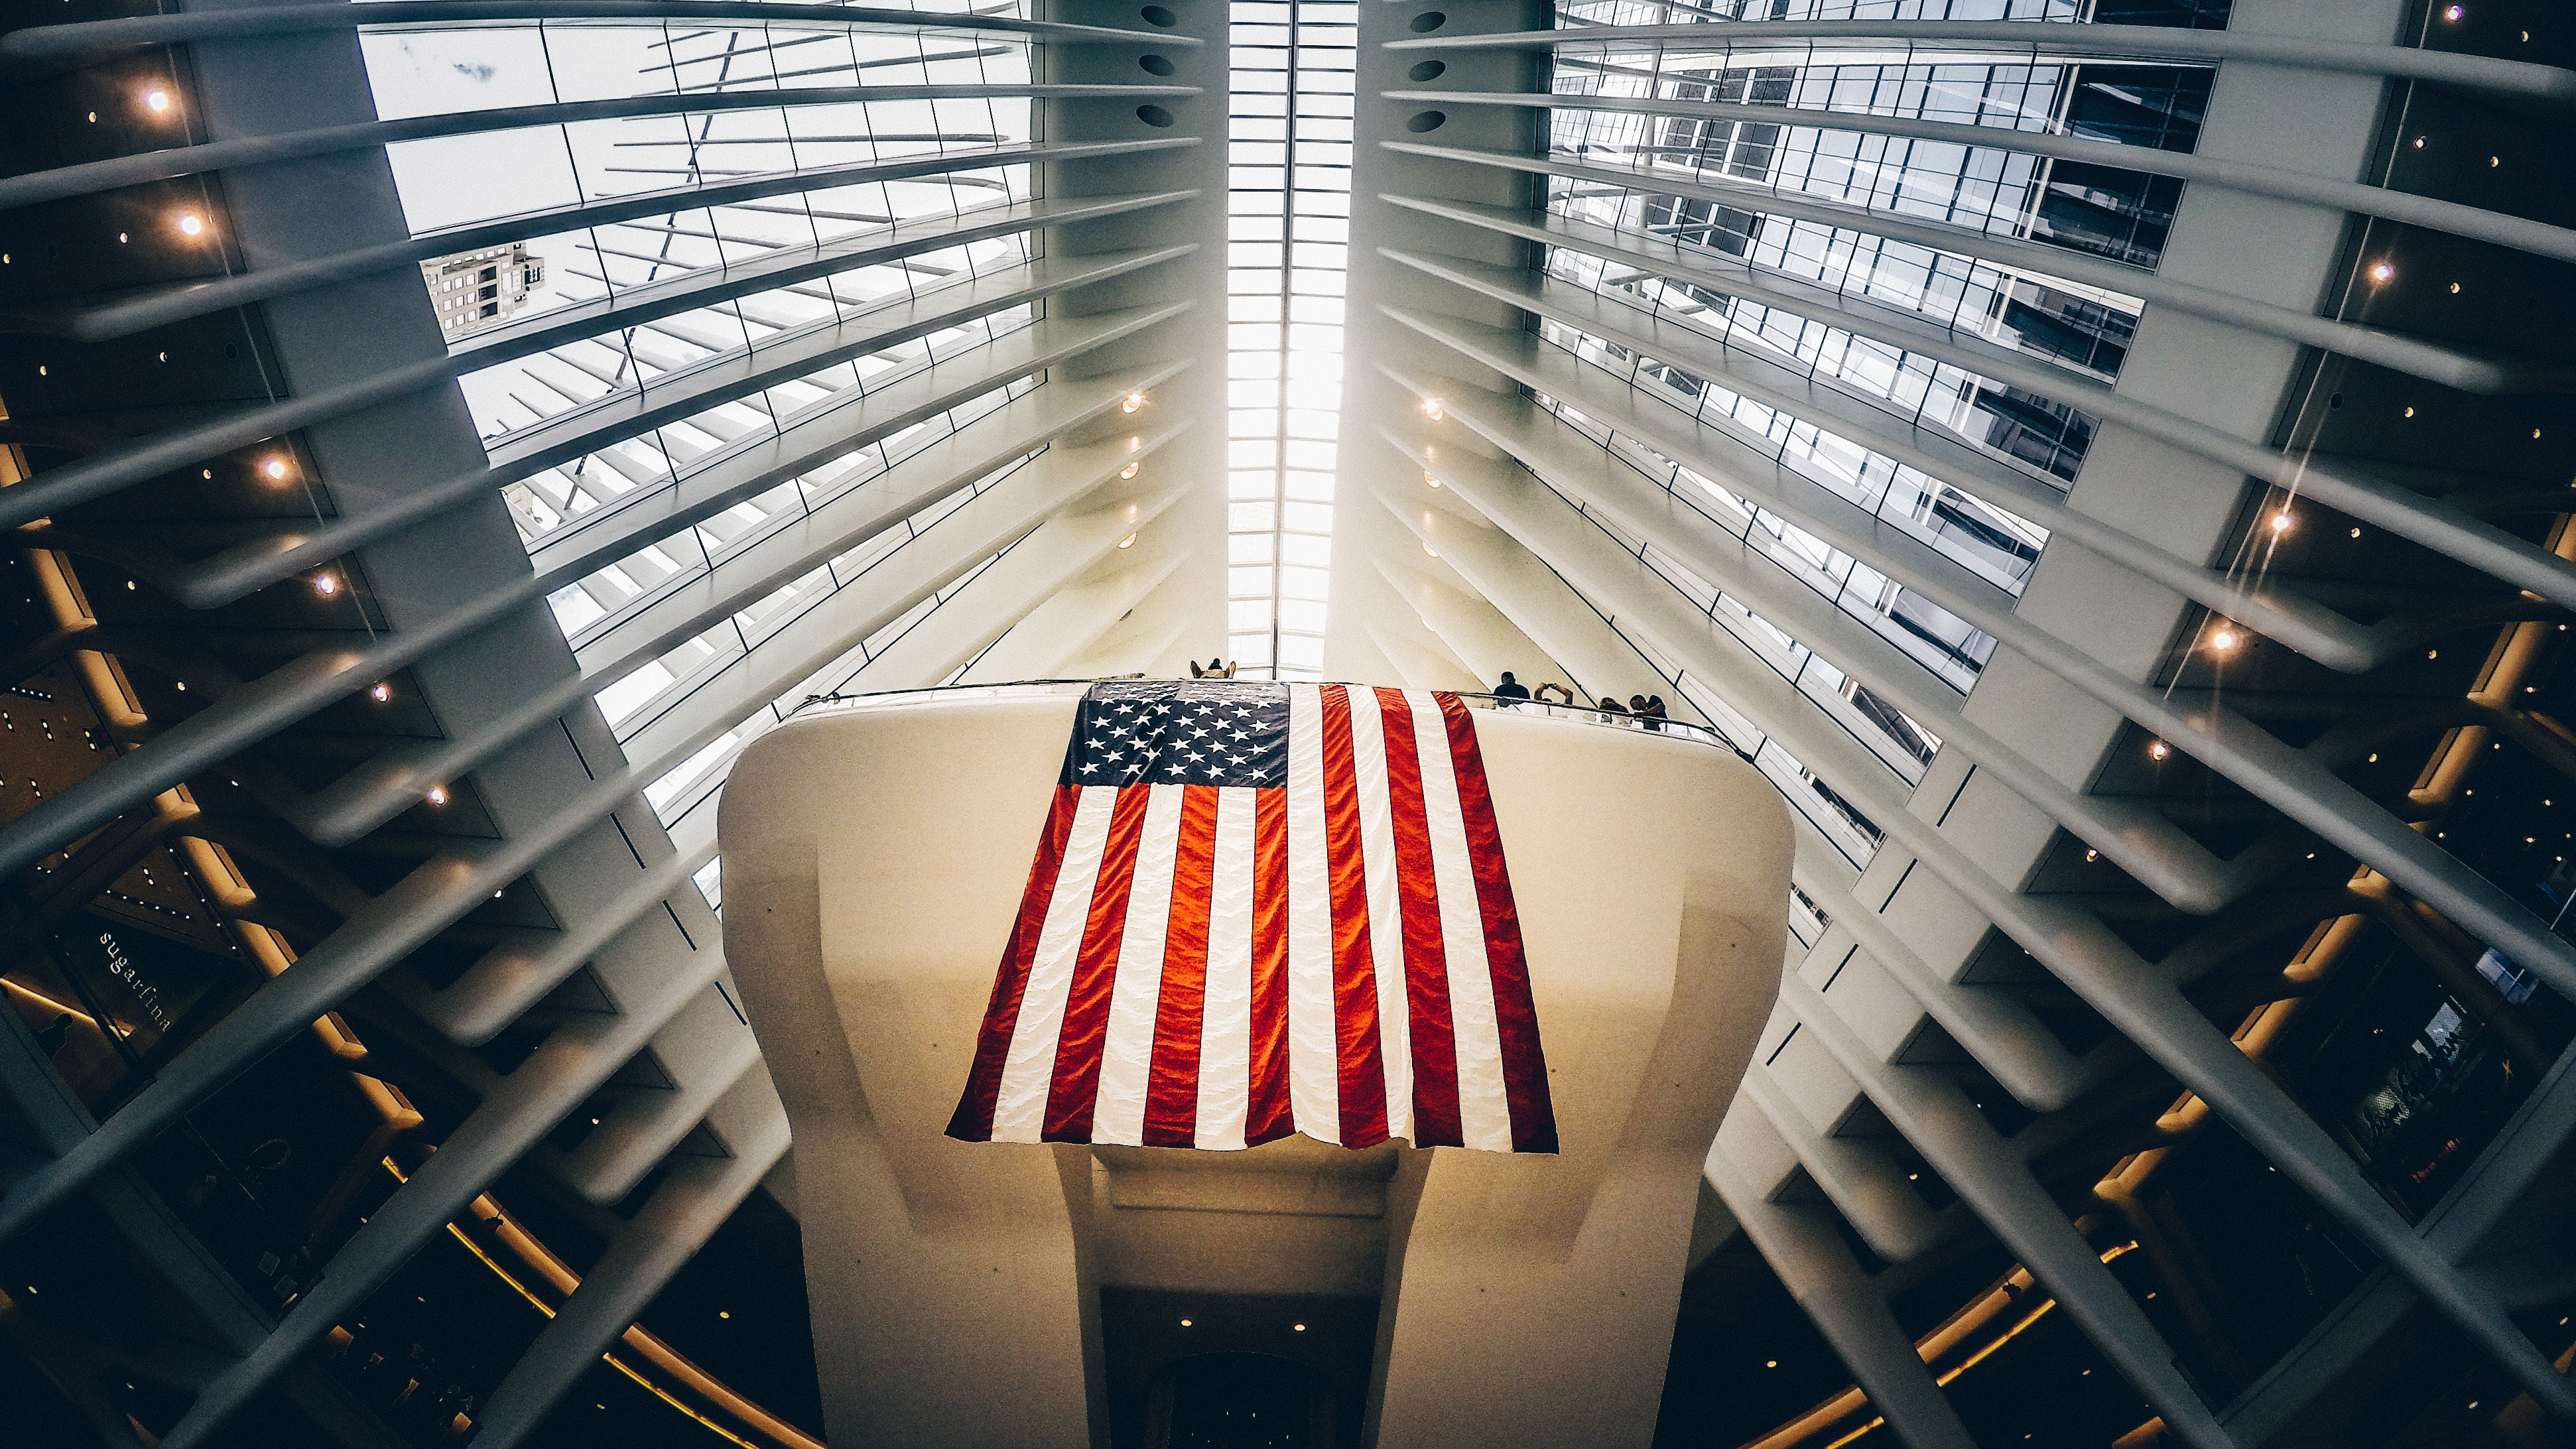 American flag hanging in the World Trade Center.